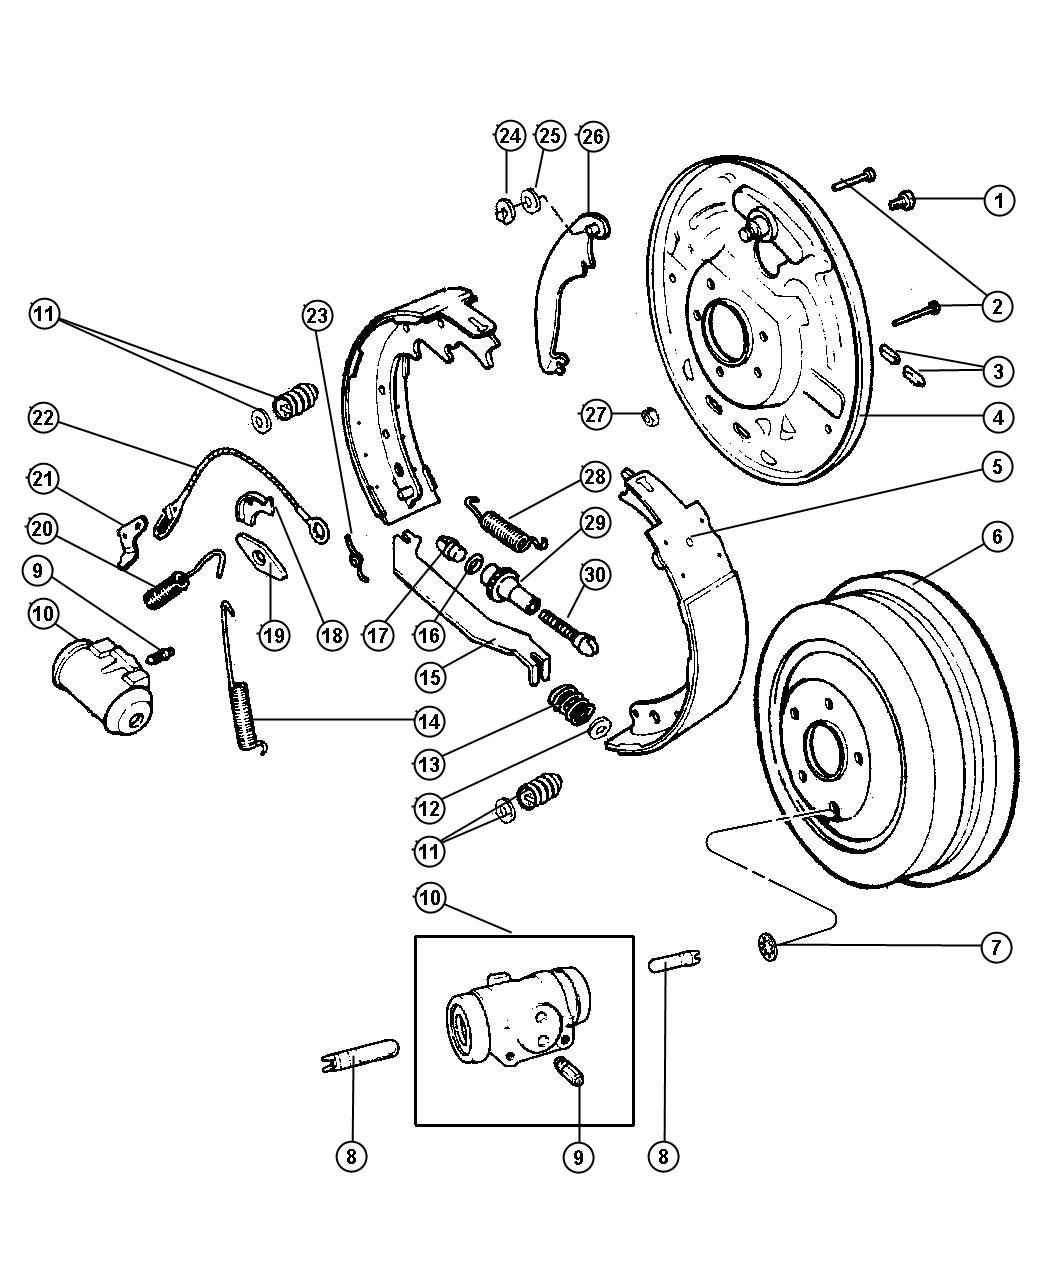 2002 Jeep Liberty Brake Replacement System Diagram as well Crankshaft Diagram Of A Harley Davidson Html furthermore Kymco Mxu 250 Atv Online Service Manual likewise 2be3t Replace Fuel Pump Saturn S Series Sc1 Dr Coupe together with Bmw I Parts Diagram Wiring Services E46 Engine Disassembly. on wiring harness removal tools